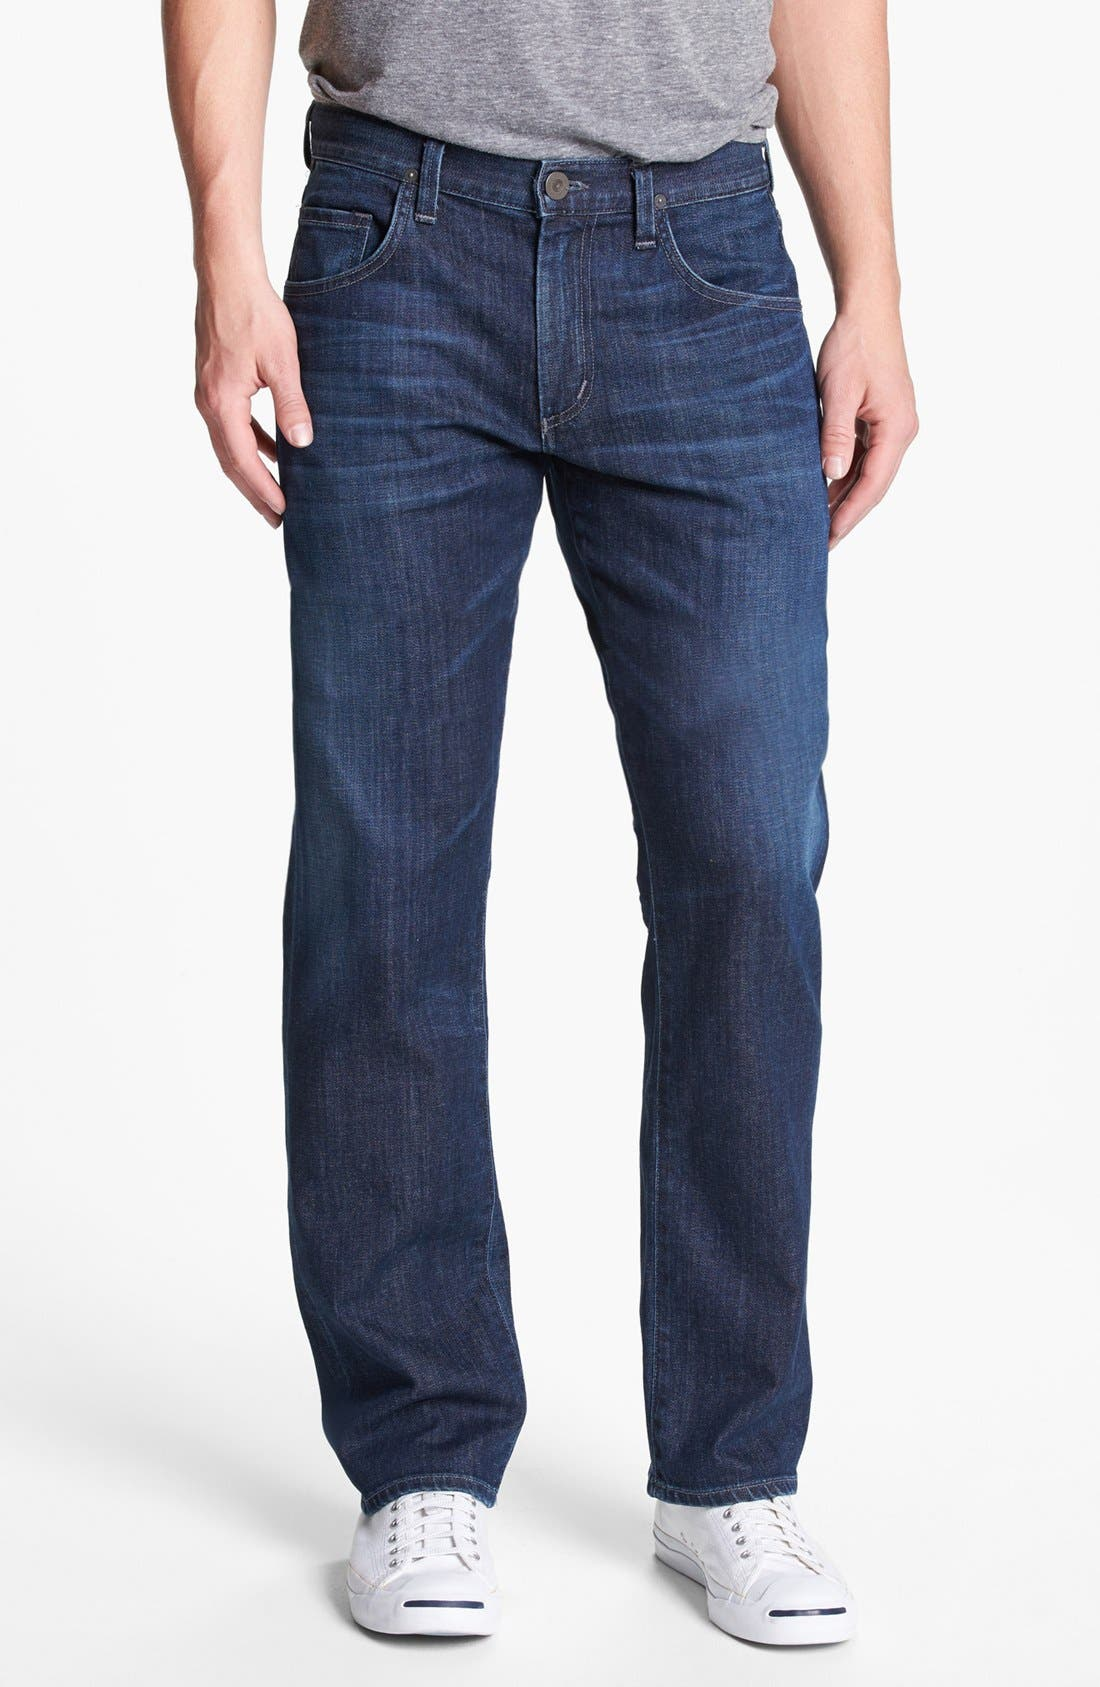 Main Image - Citizens of Humanity 'Perfect' Relaxed Fit Jeans (Ricky)